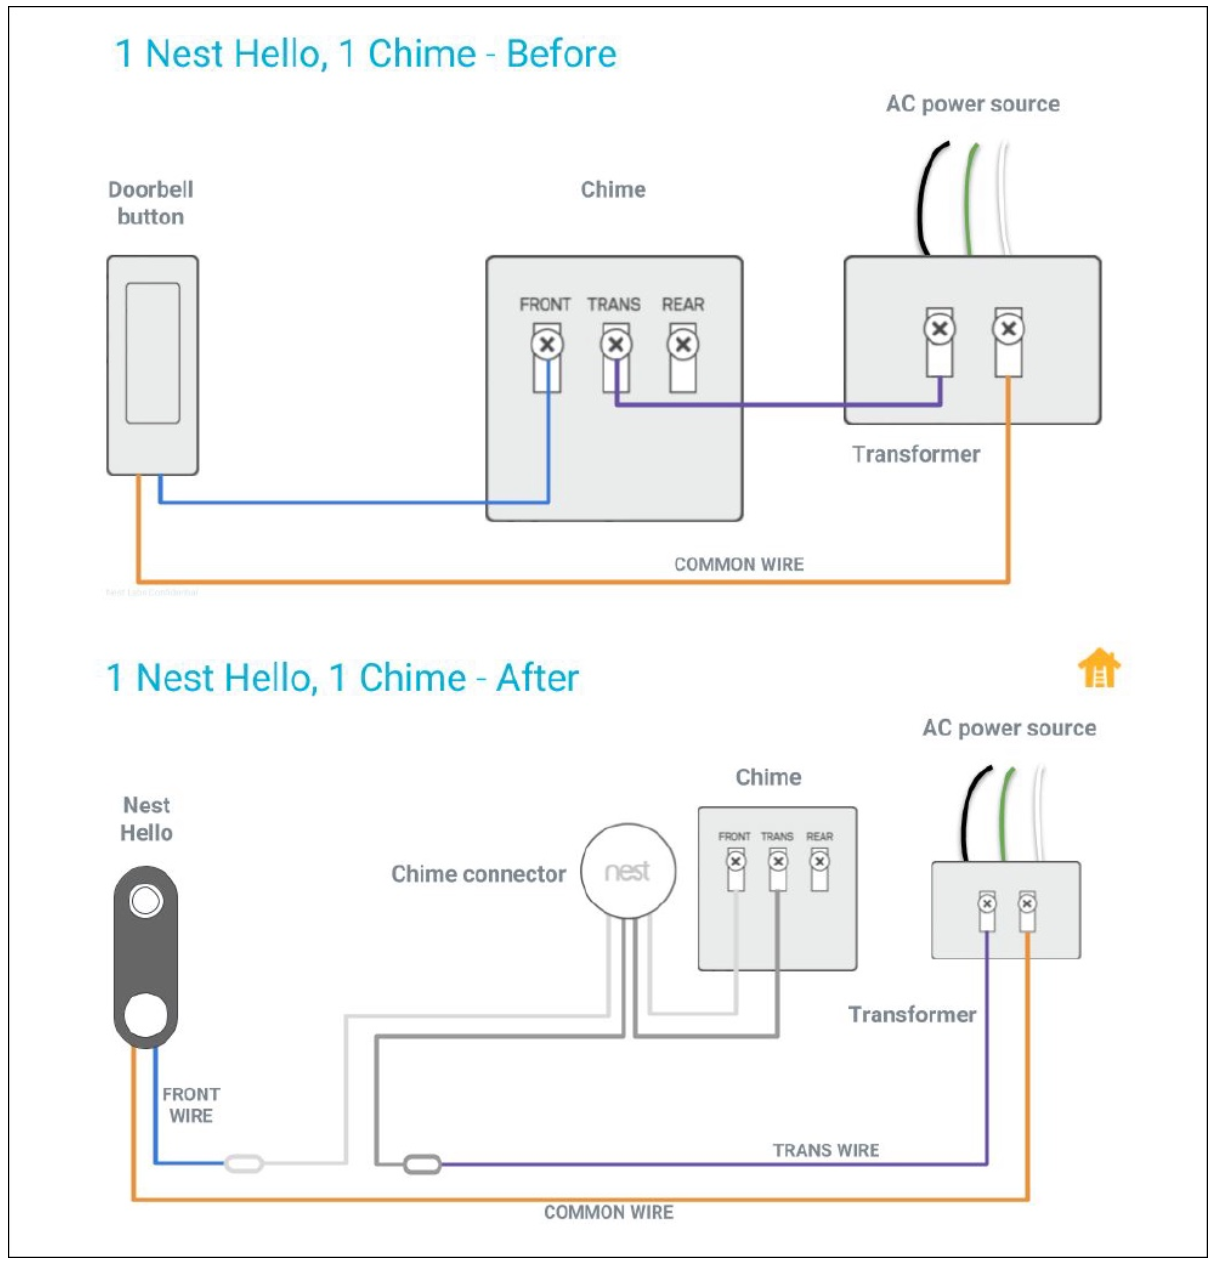 Wiring Diagram Nest Hello With Honeywell Electronic Chime Google Nest Community